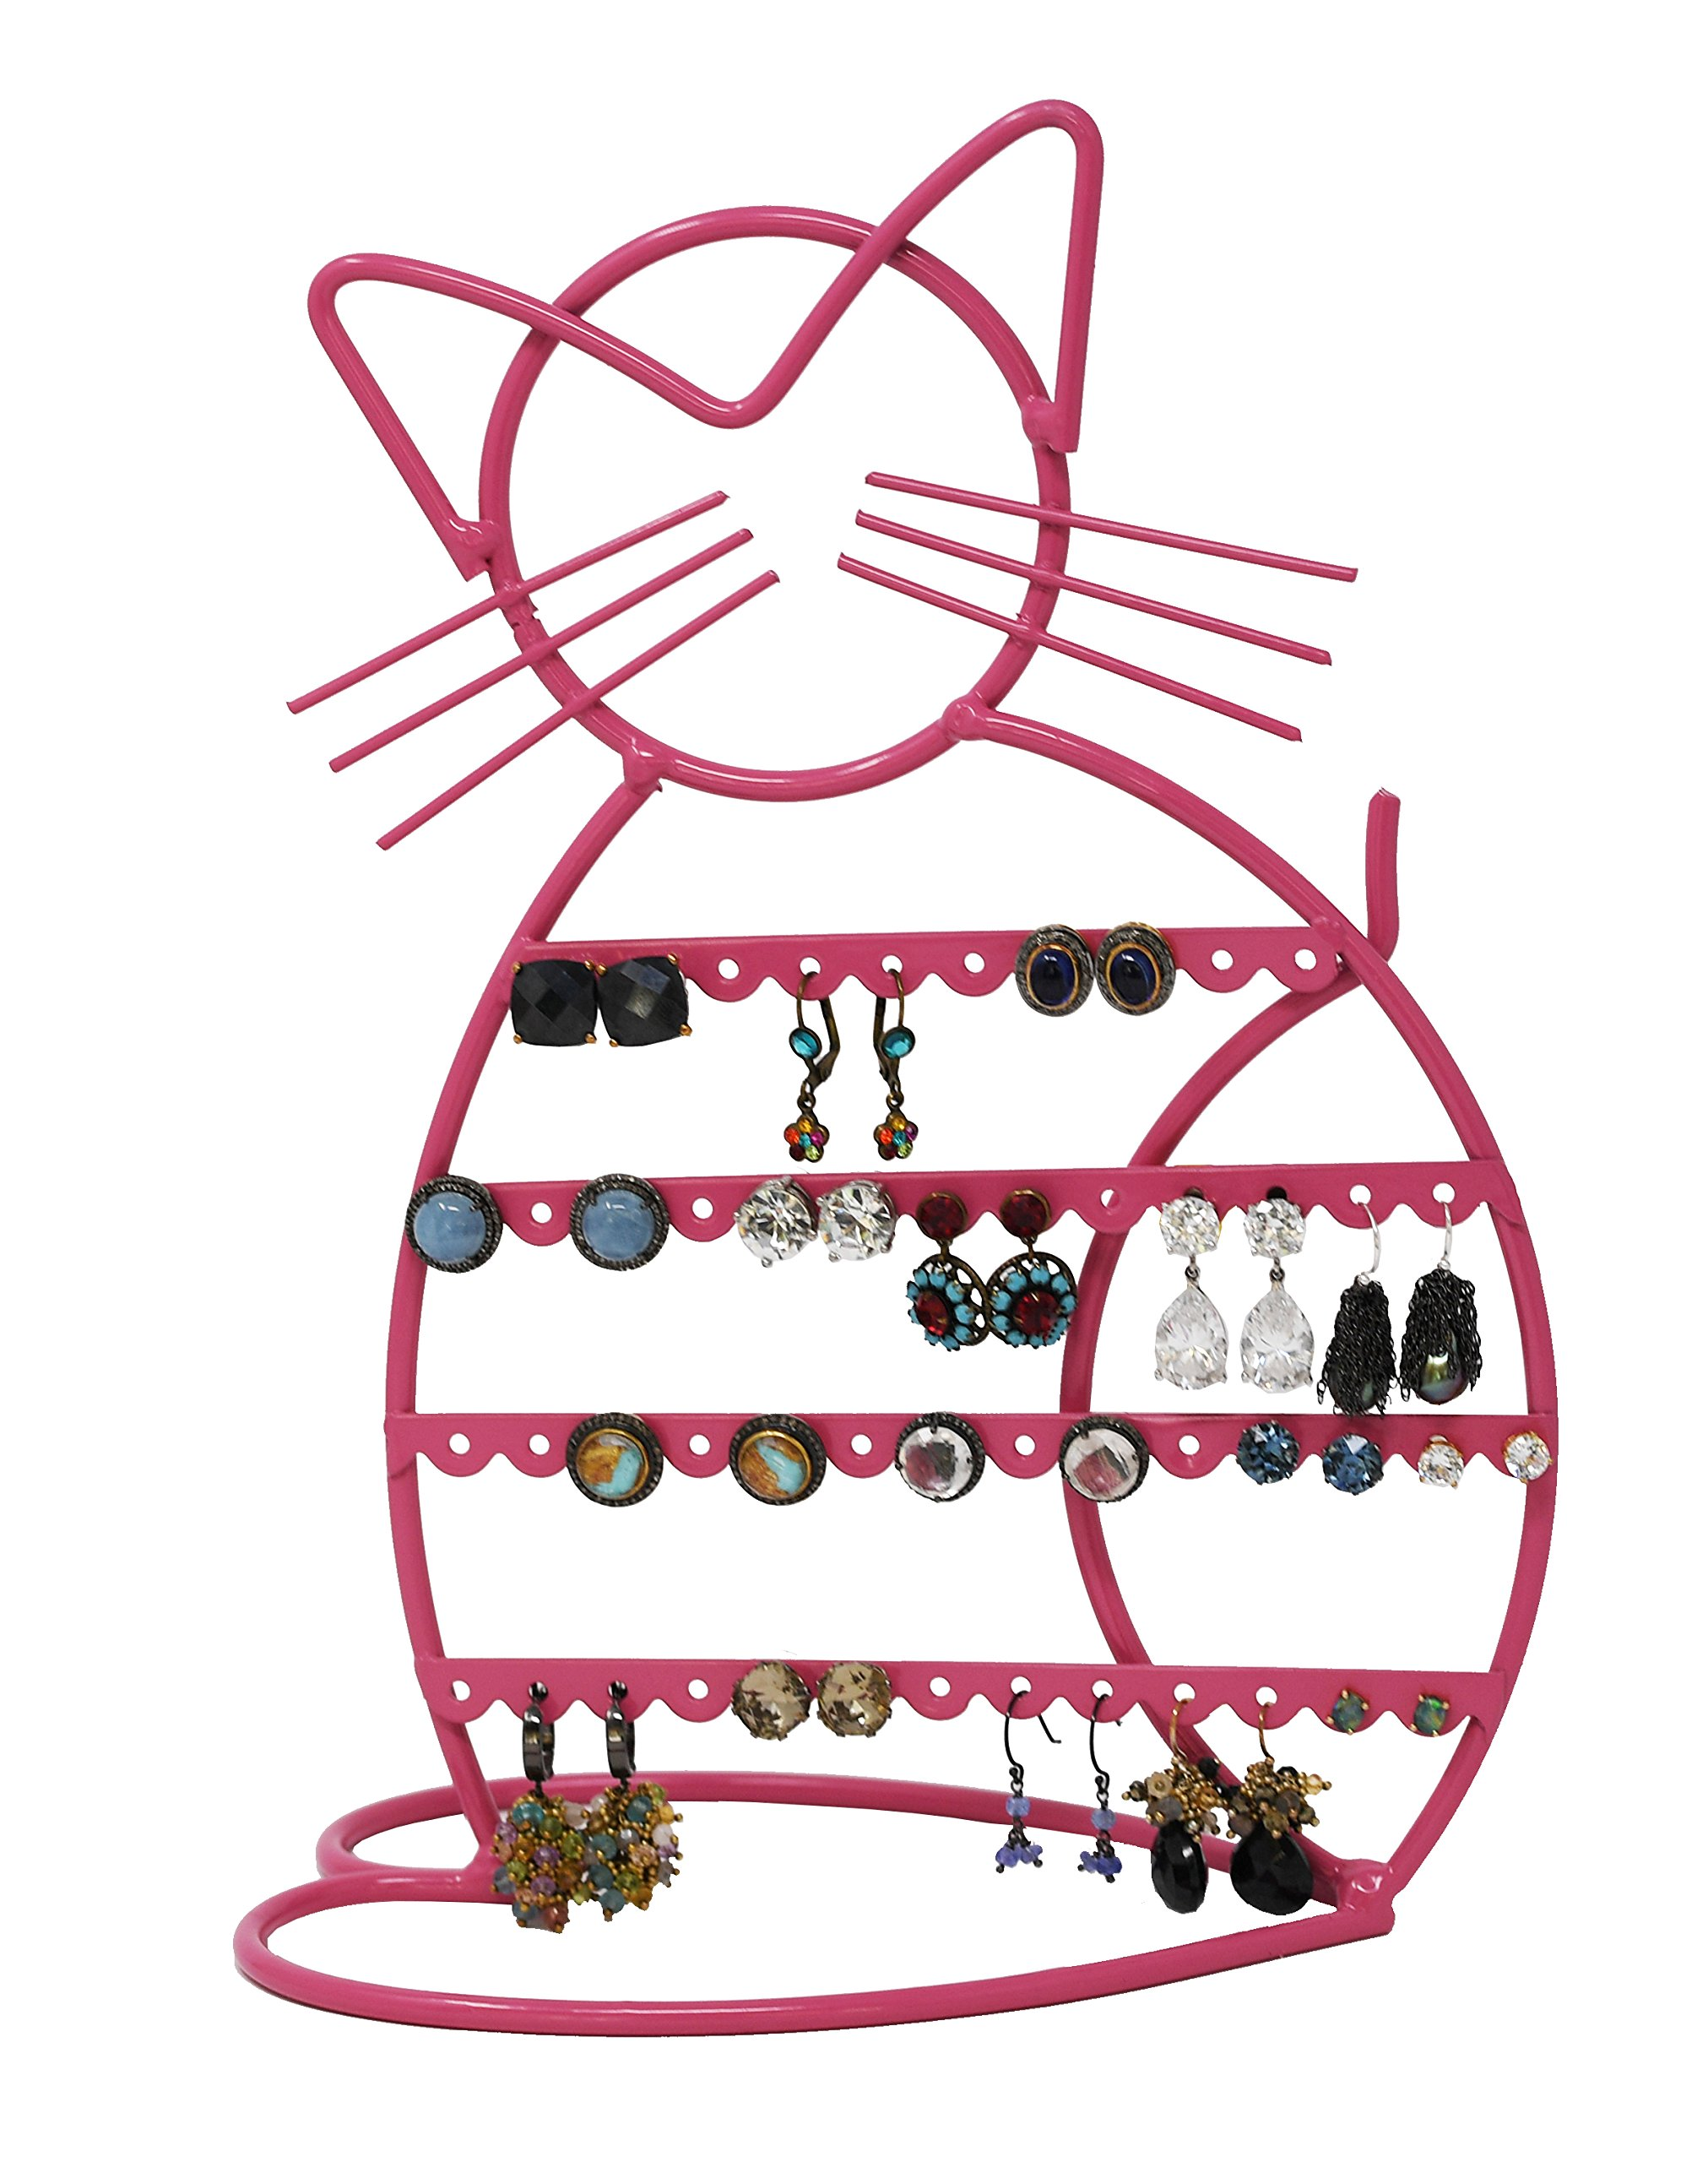 ARAD Metal Jewelry Cat, Holder Organizer-Hanging Jewelry Display Earrings & Other Piercings by ARAD (Image #1)